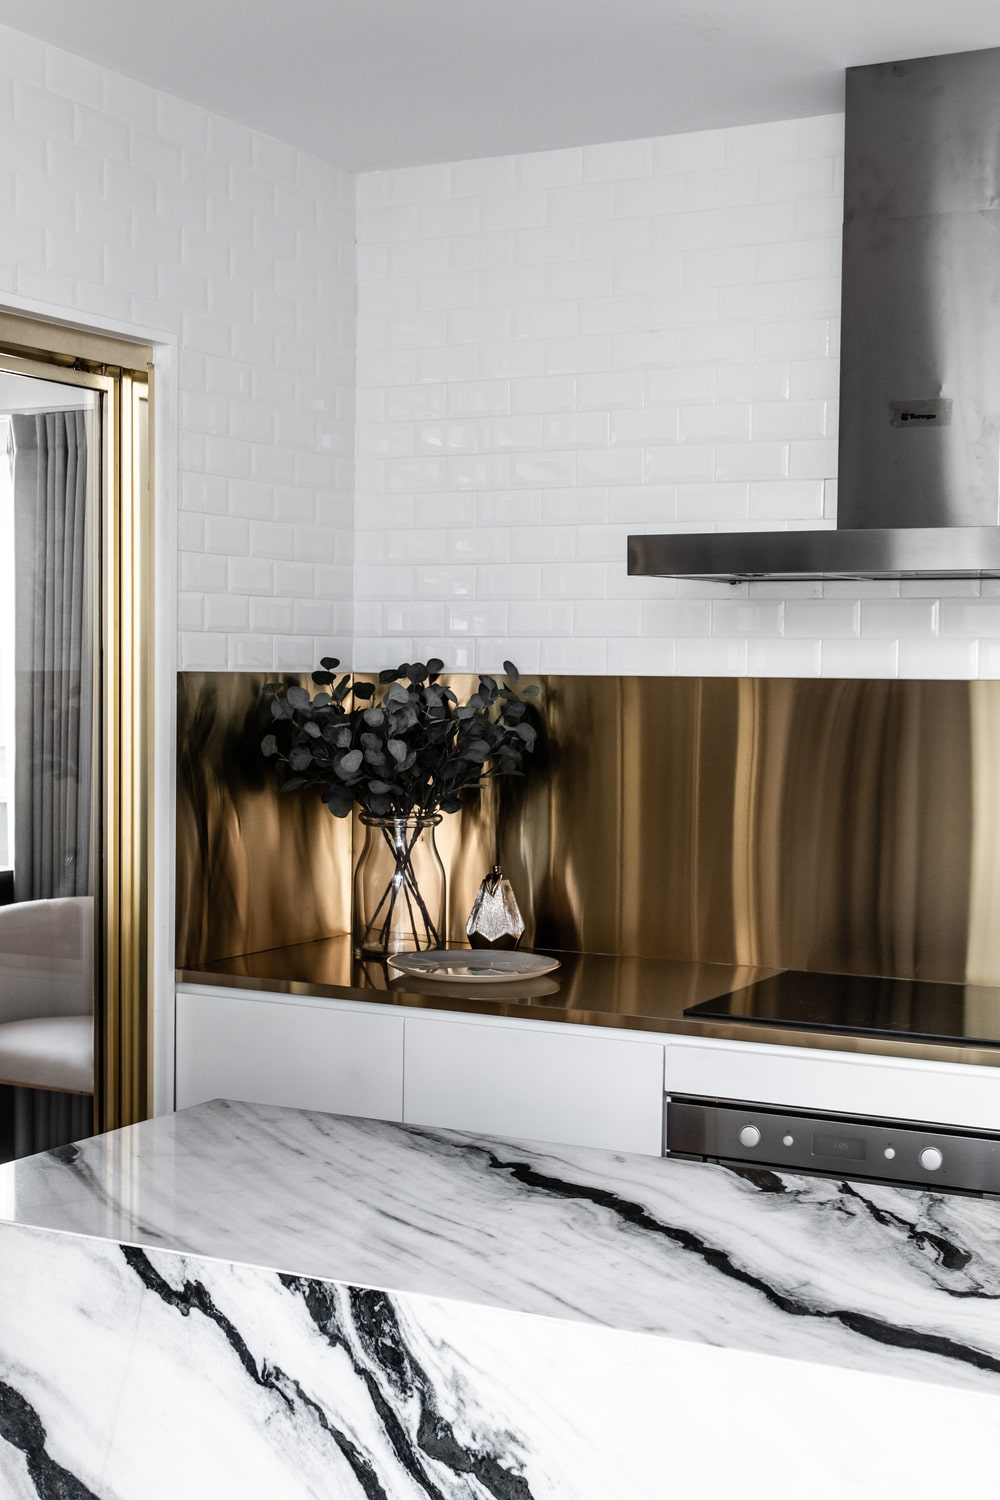 This is a closer look at the golden backsplash of the kitchen counter and its stainless steel vent hood.